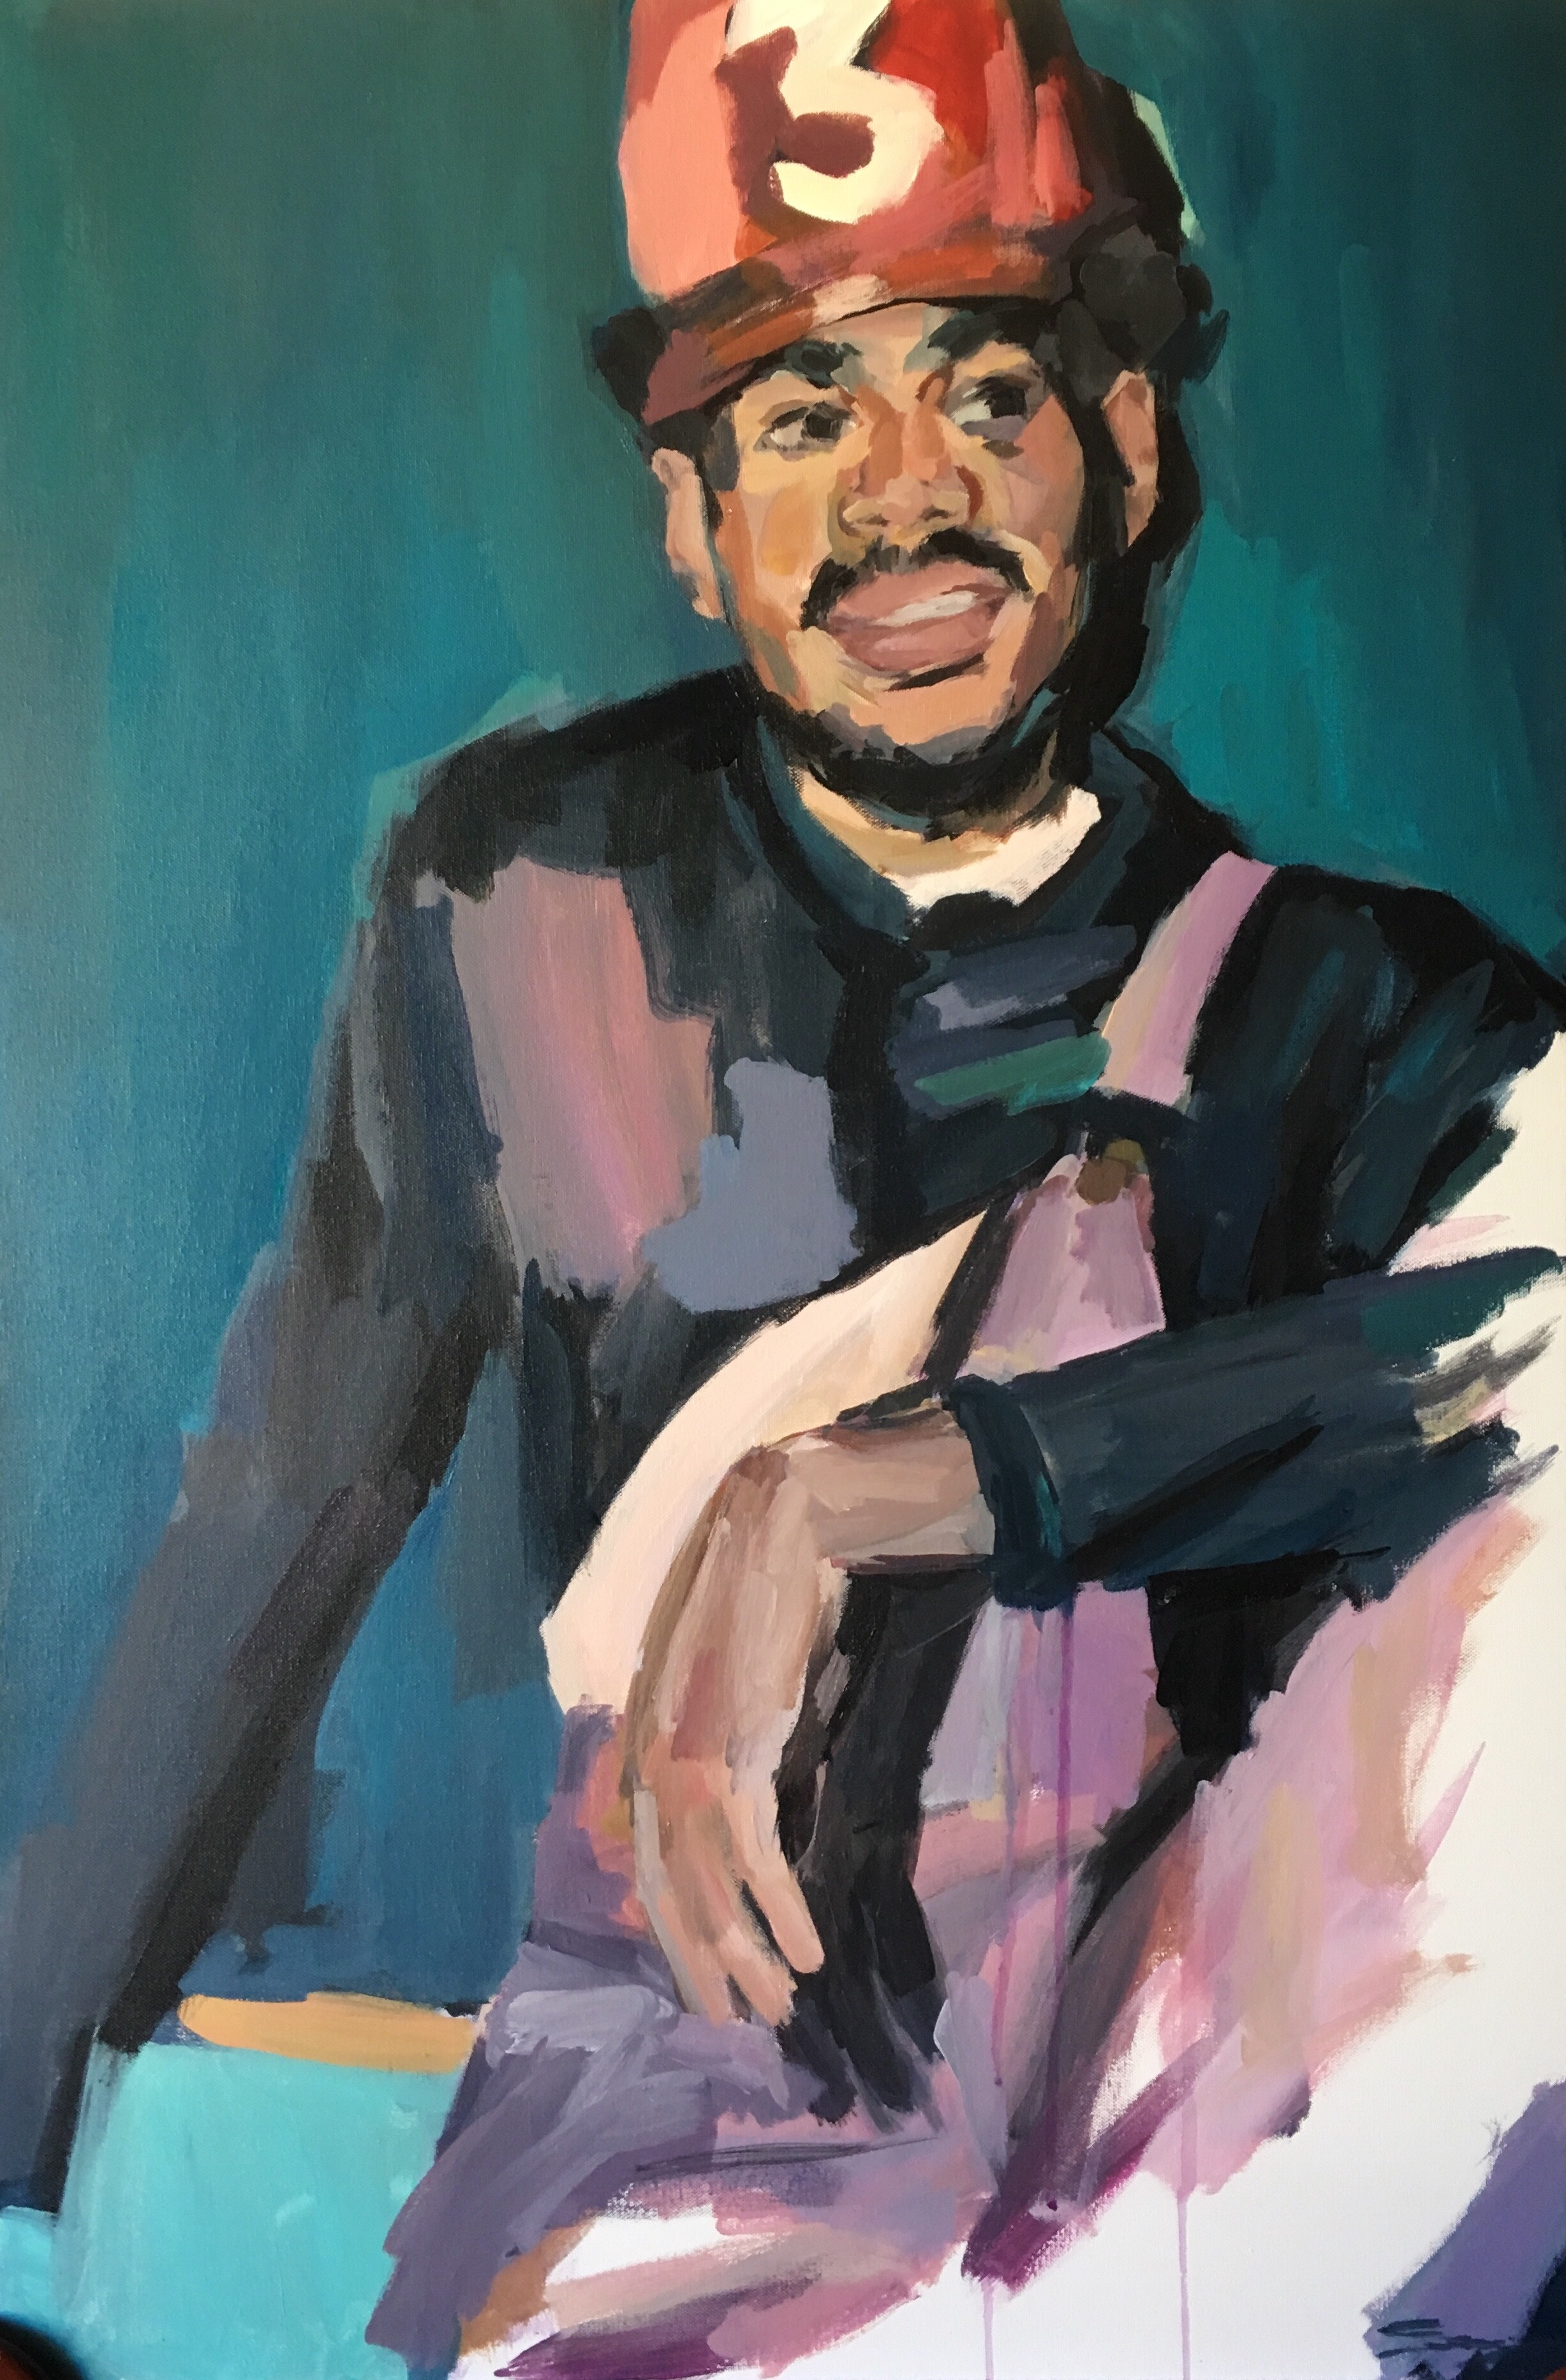 Chance the rapper painting.jpg